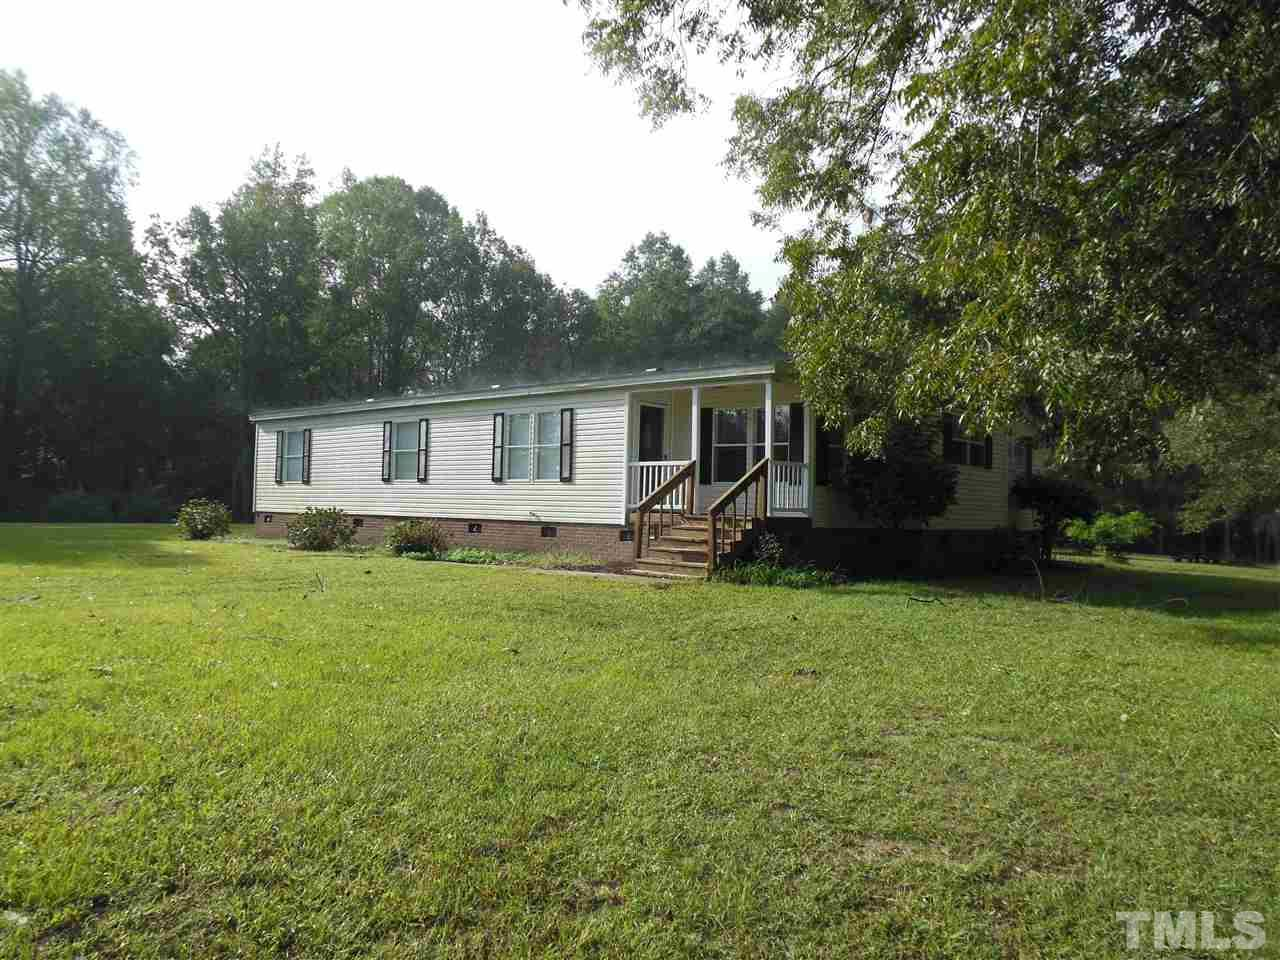 Remodeled triple wide on foundation. New Interior. Home sits toward the back of the property. Private well and septic with plenty of road frontage on Ten Ten. Amenities less than 2 mi. New paint, HVAC, kitchen, carpet, and roof. Sits next to Vance Elementary and the walking track is an easy access. 13 acres of unrestricted land - additional $500 per month.